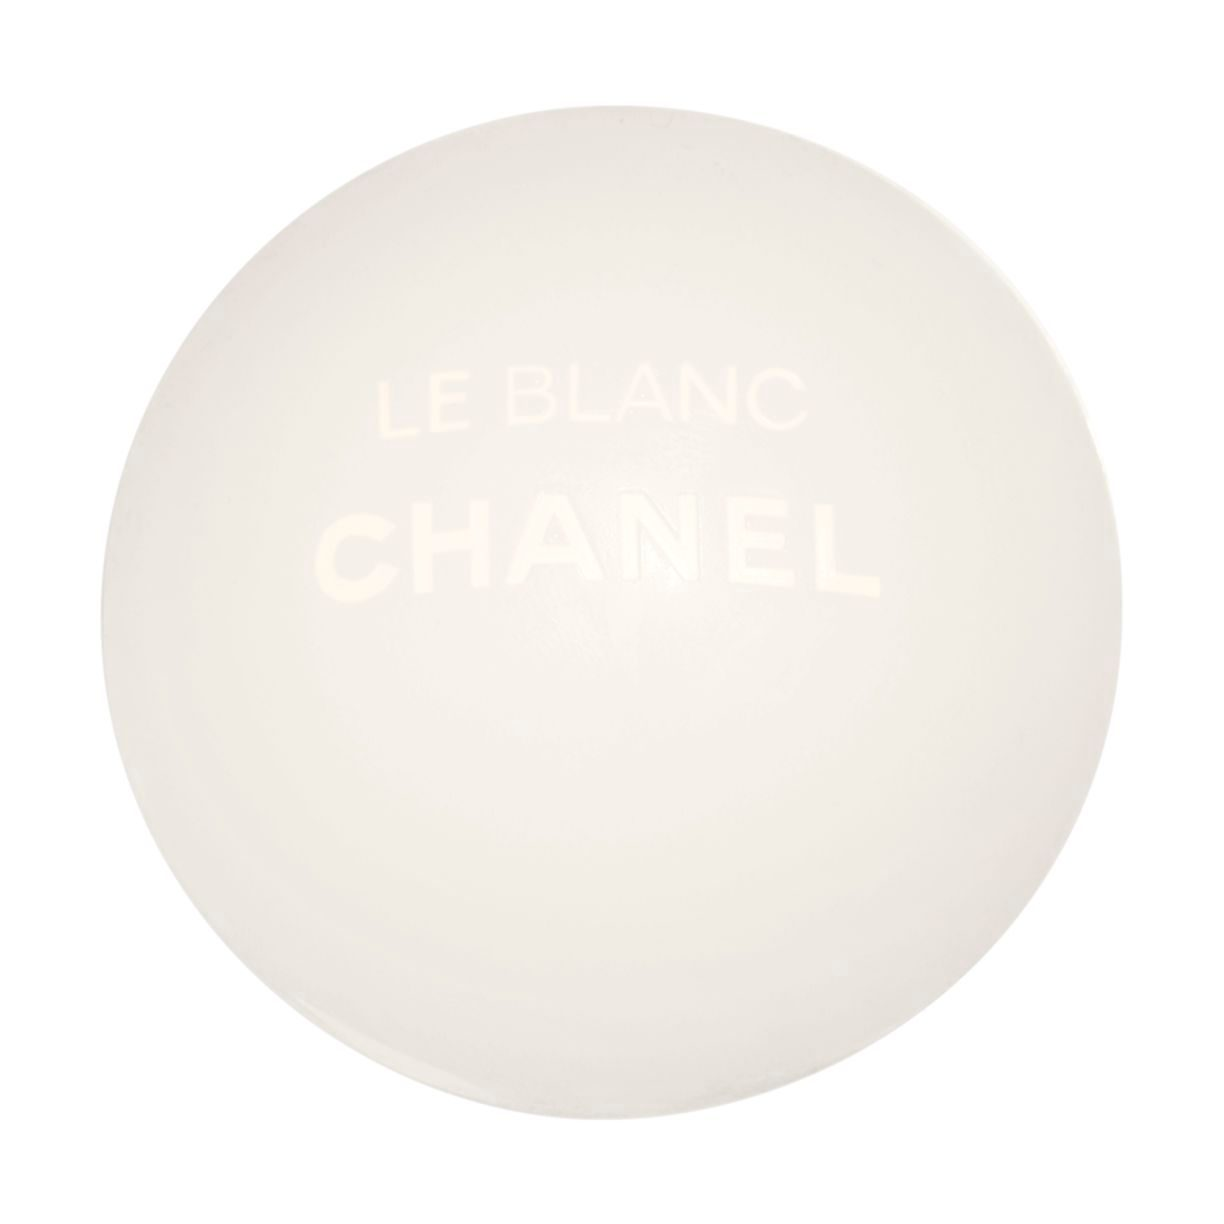 LE BLANC BRIGHTENING PEARL SOAP MAKEUP REMOVER